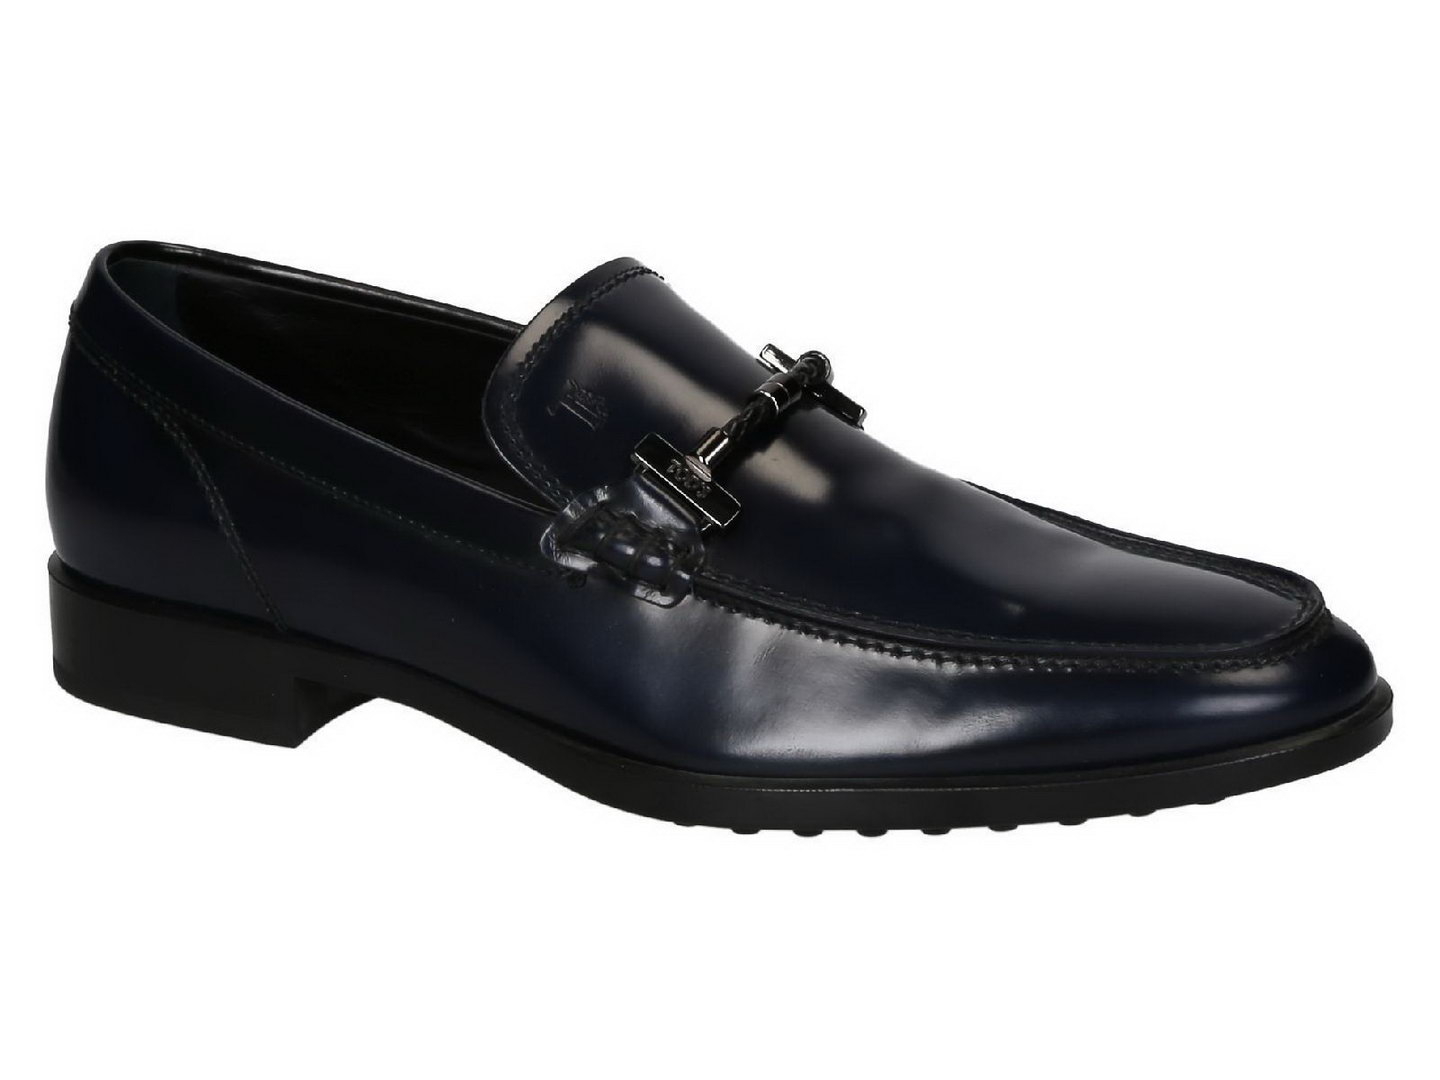 Tods Loafers for Women | Tods Loafers | Tods Gommino Loafers